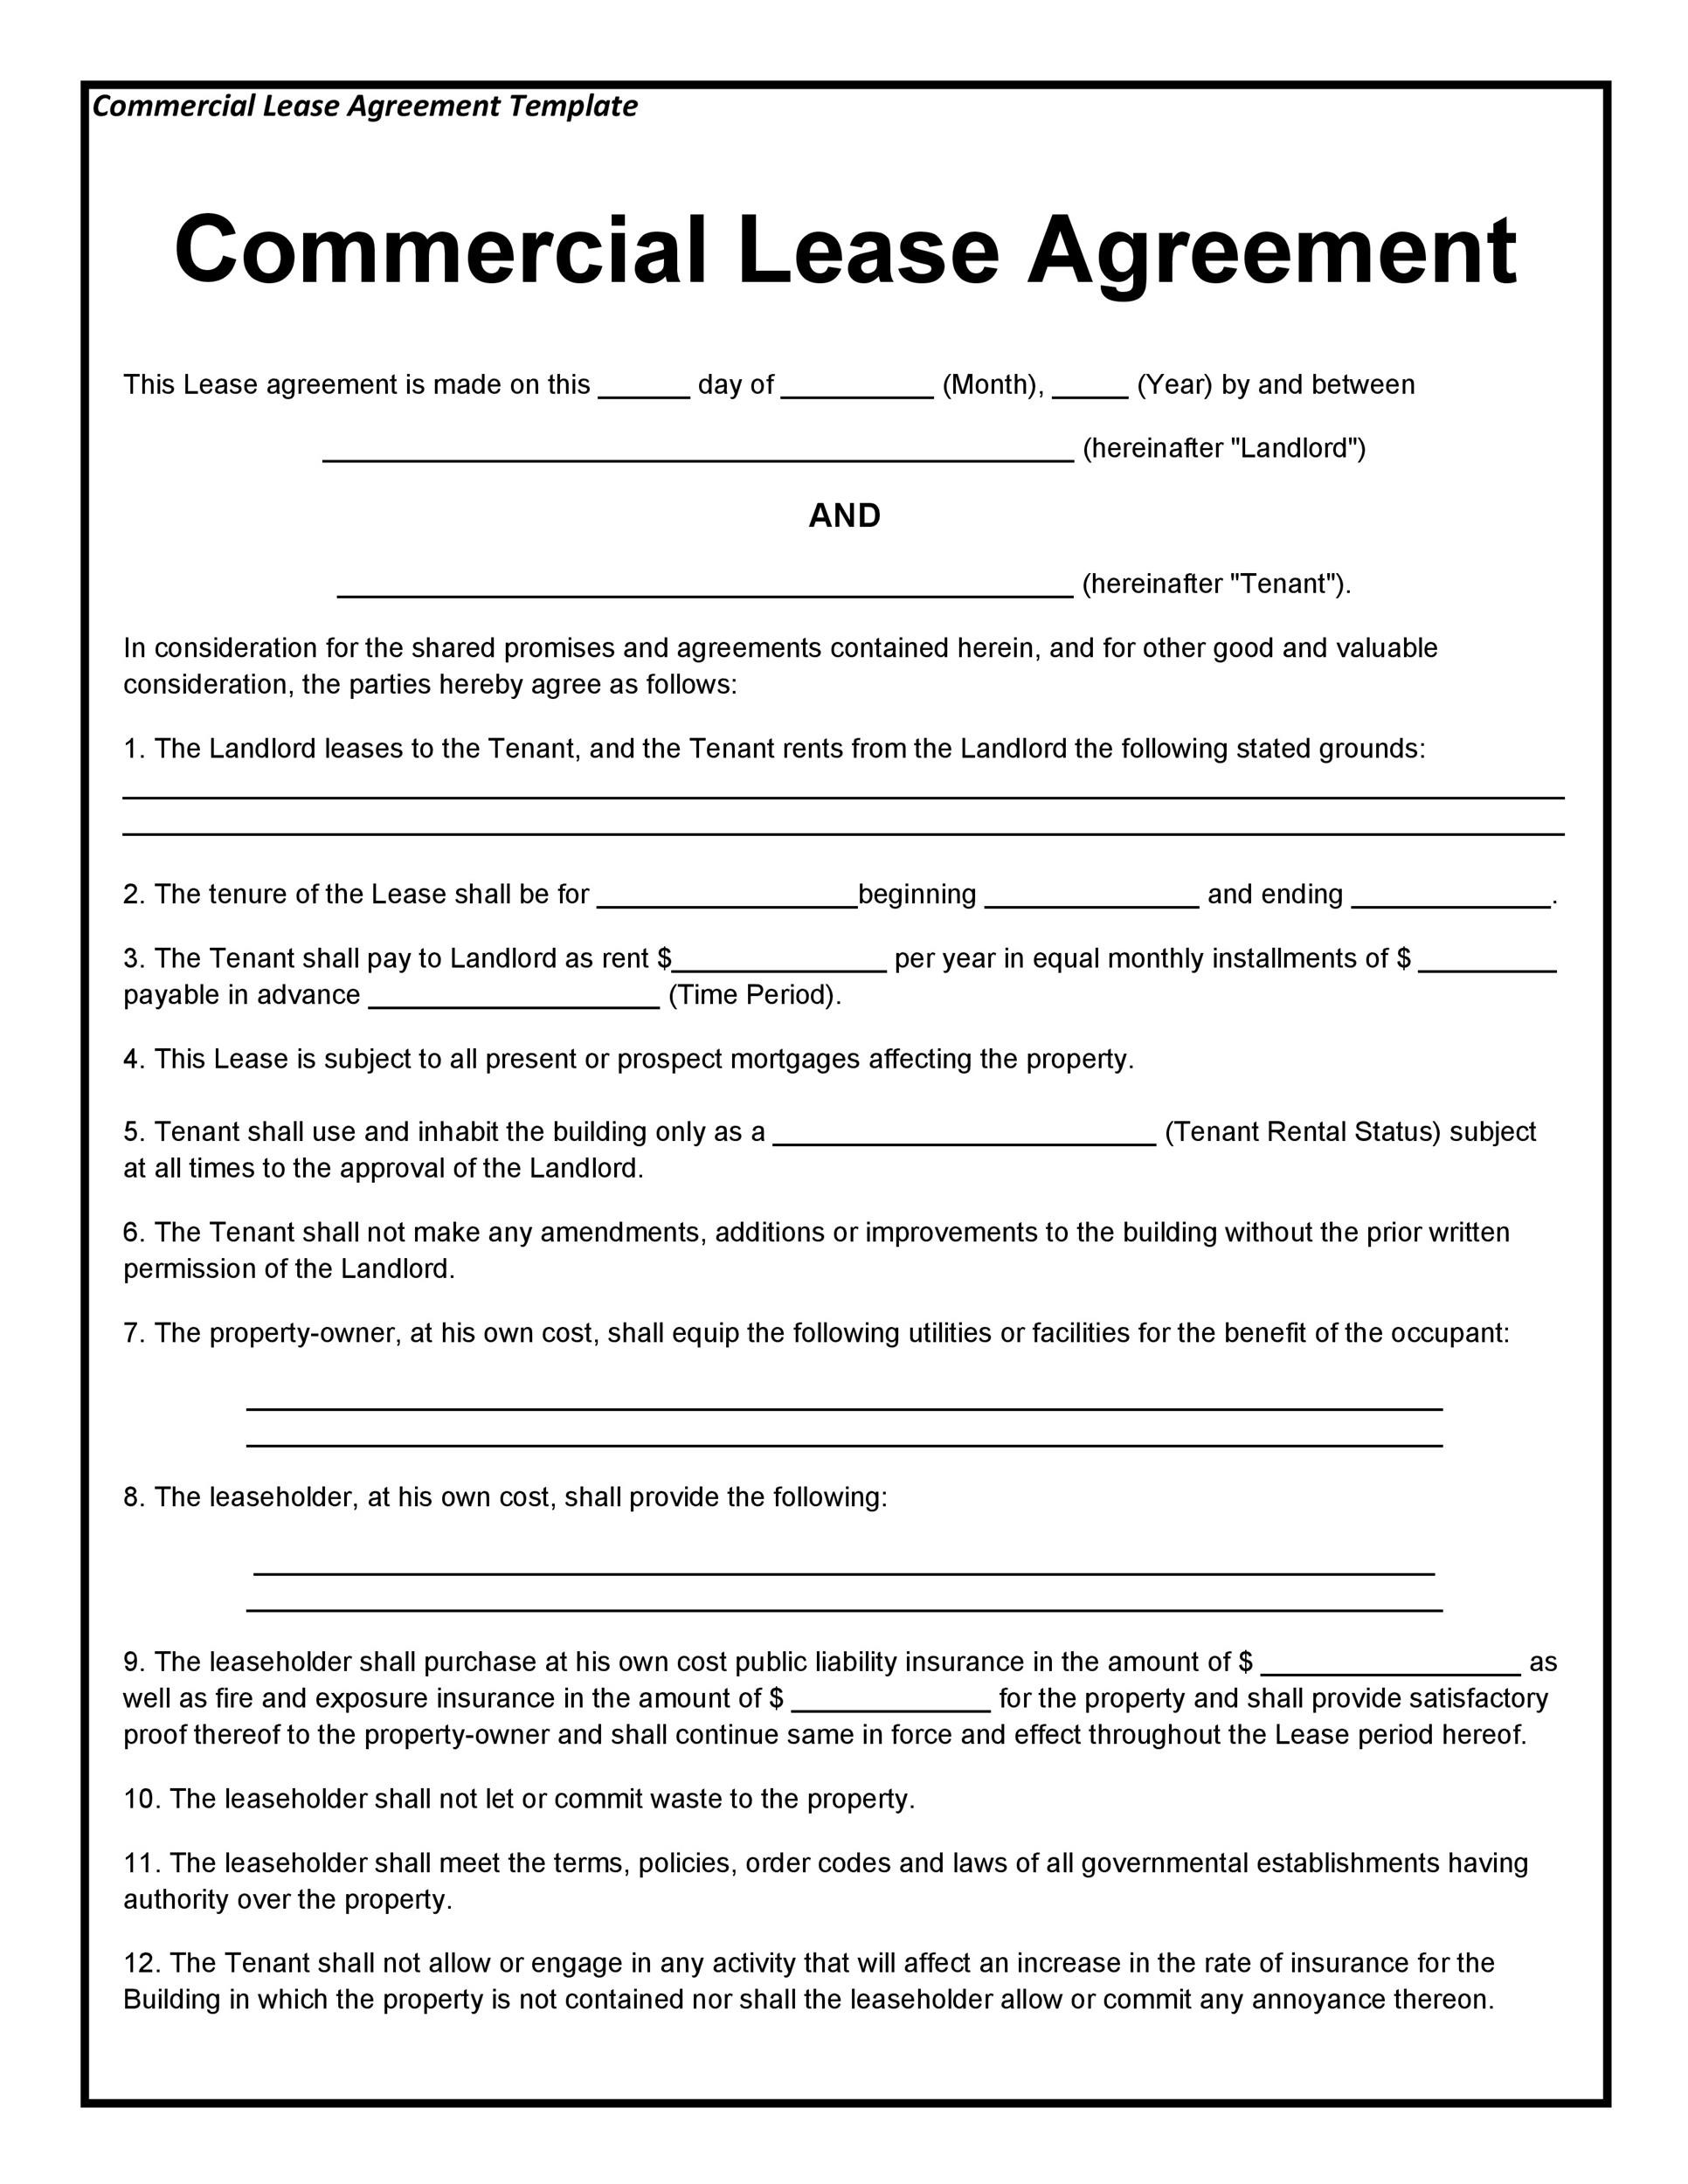 Commercial Lease Agreements